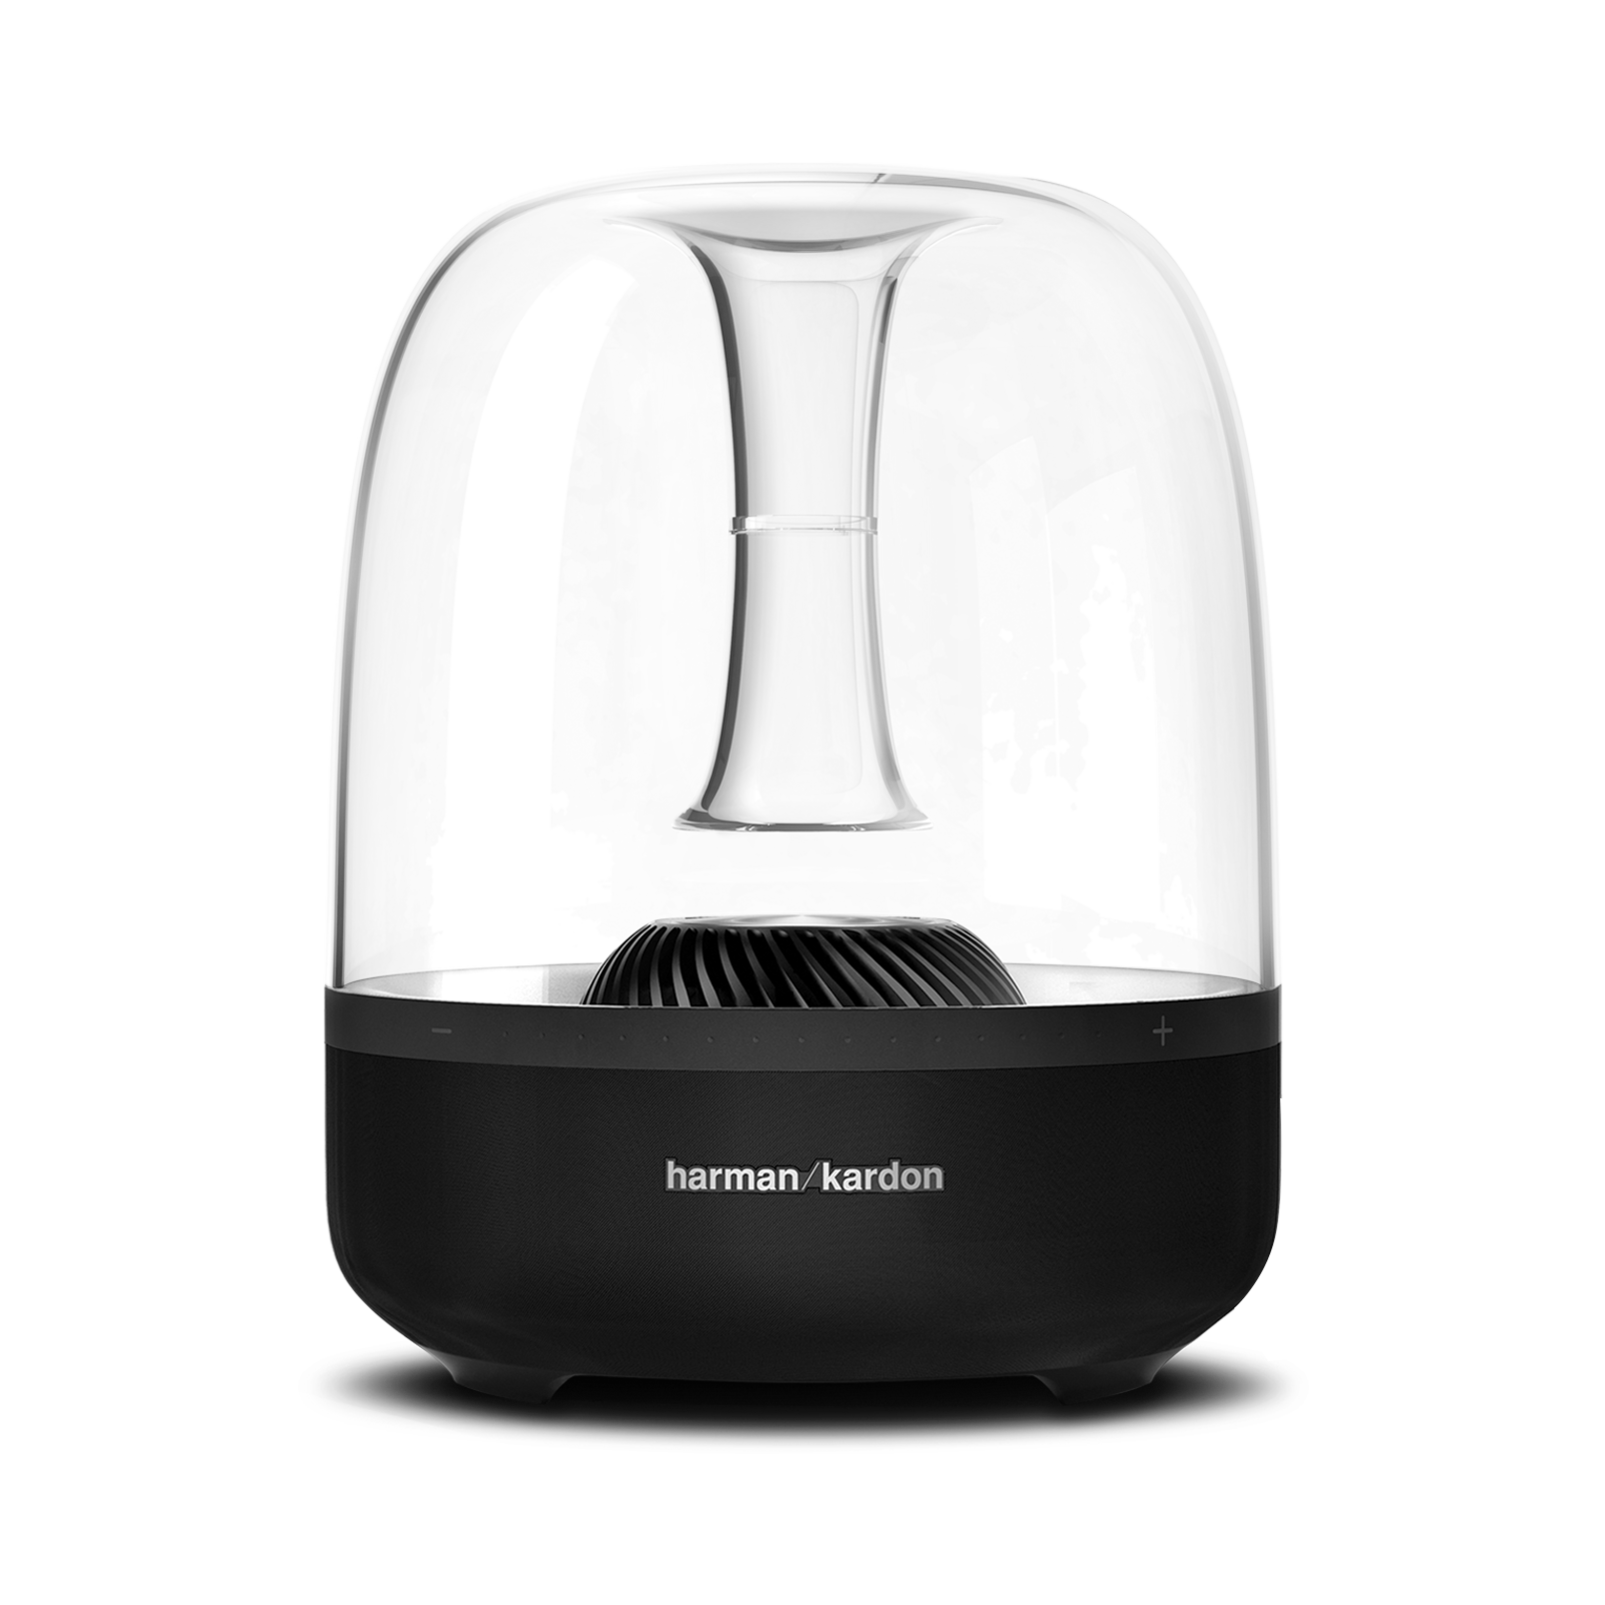 Harman Kardon Aura Wireless Home Speaker Refurbished $129.99 + Free Shipping